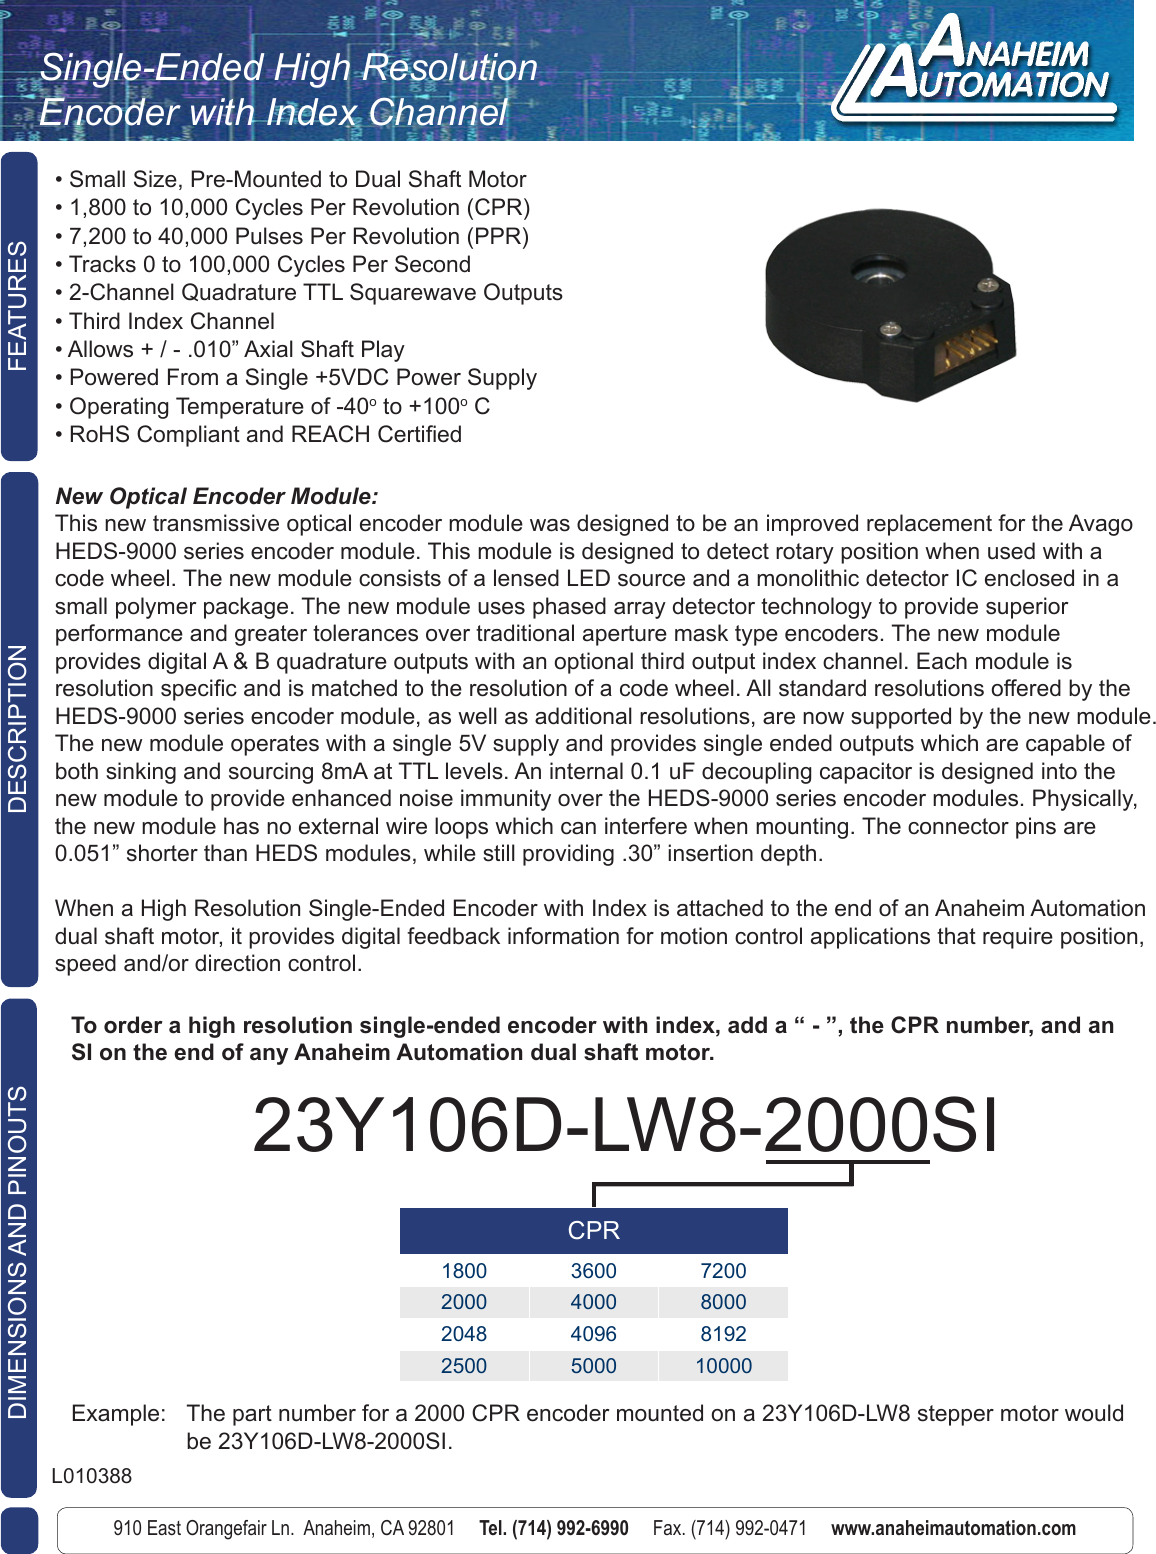 L010388 Single Ended High Resolution Encoder With Channel